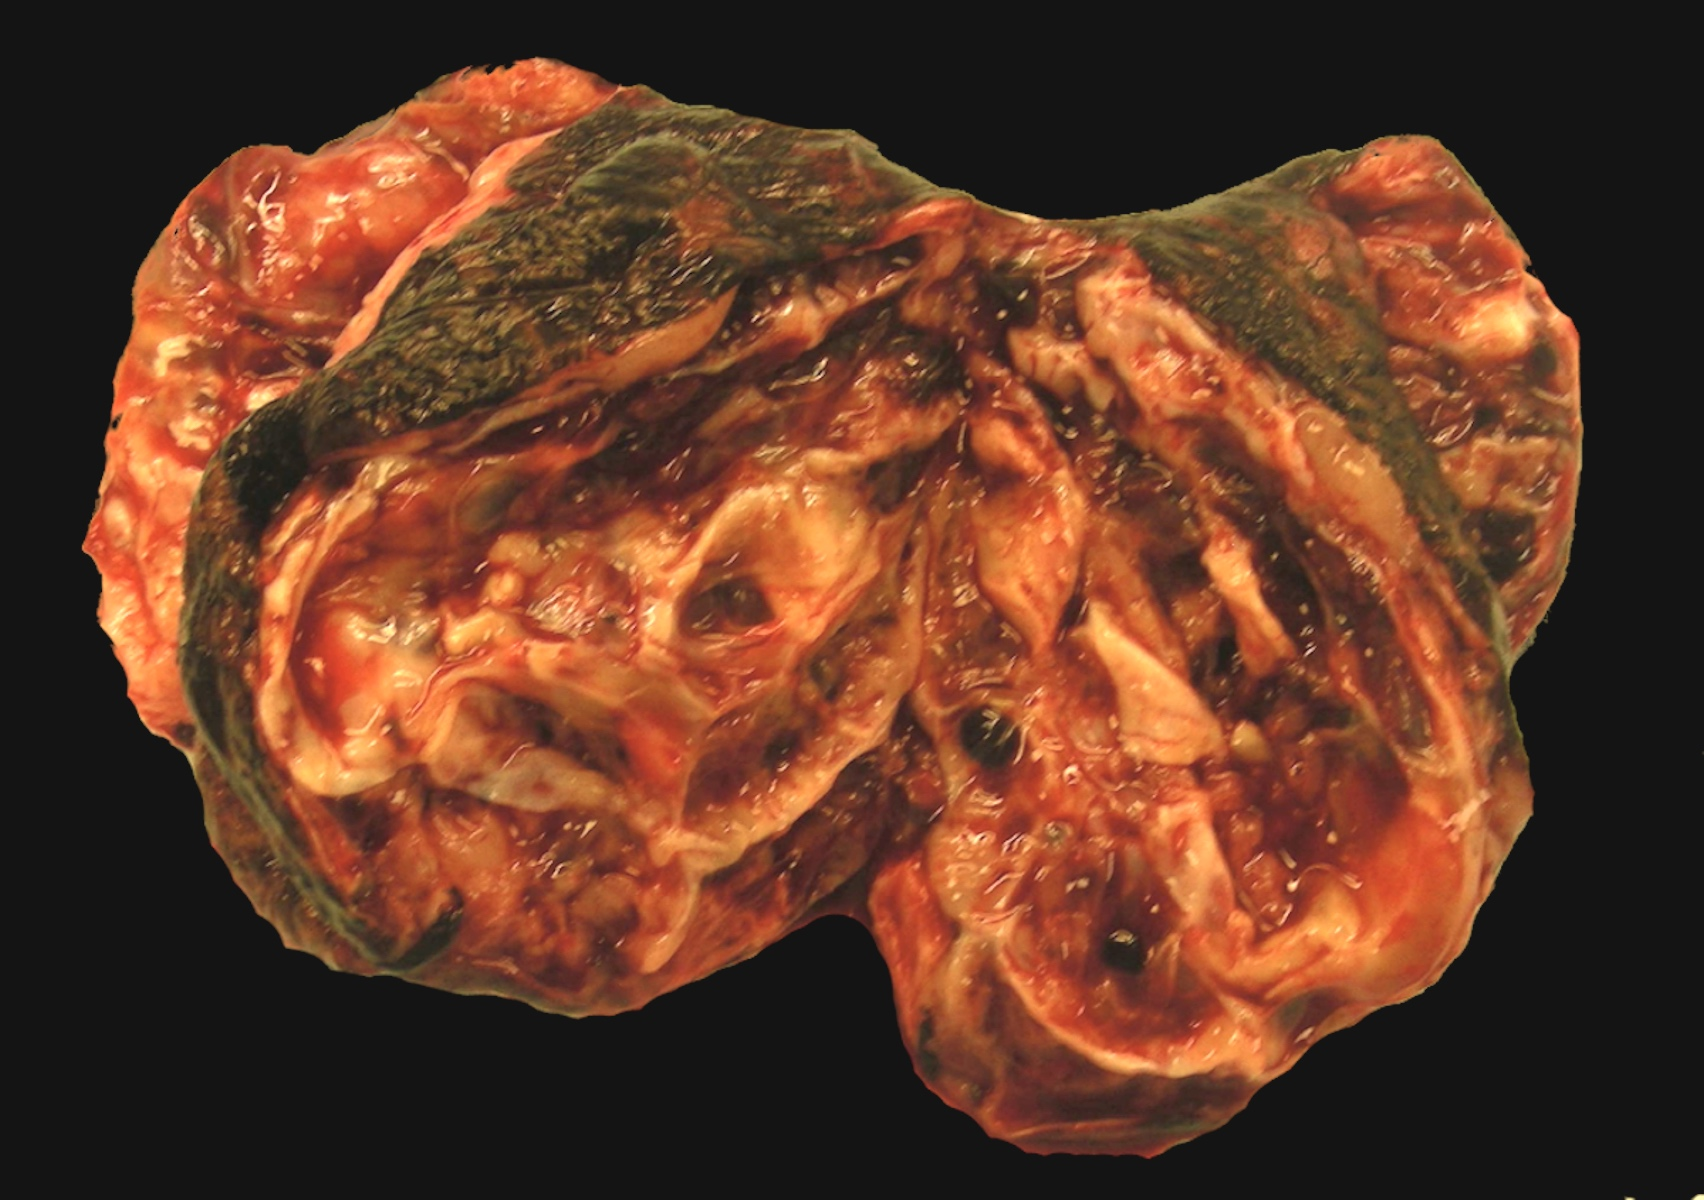 Solid and cystic mass